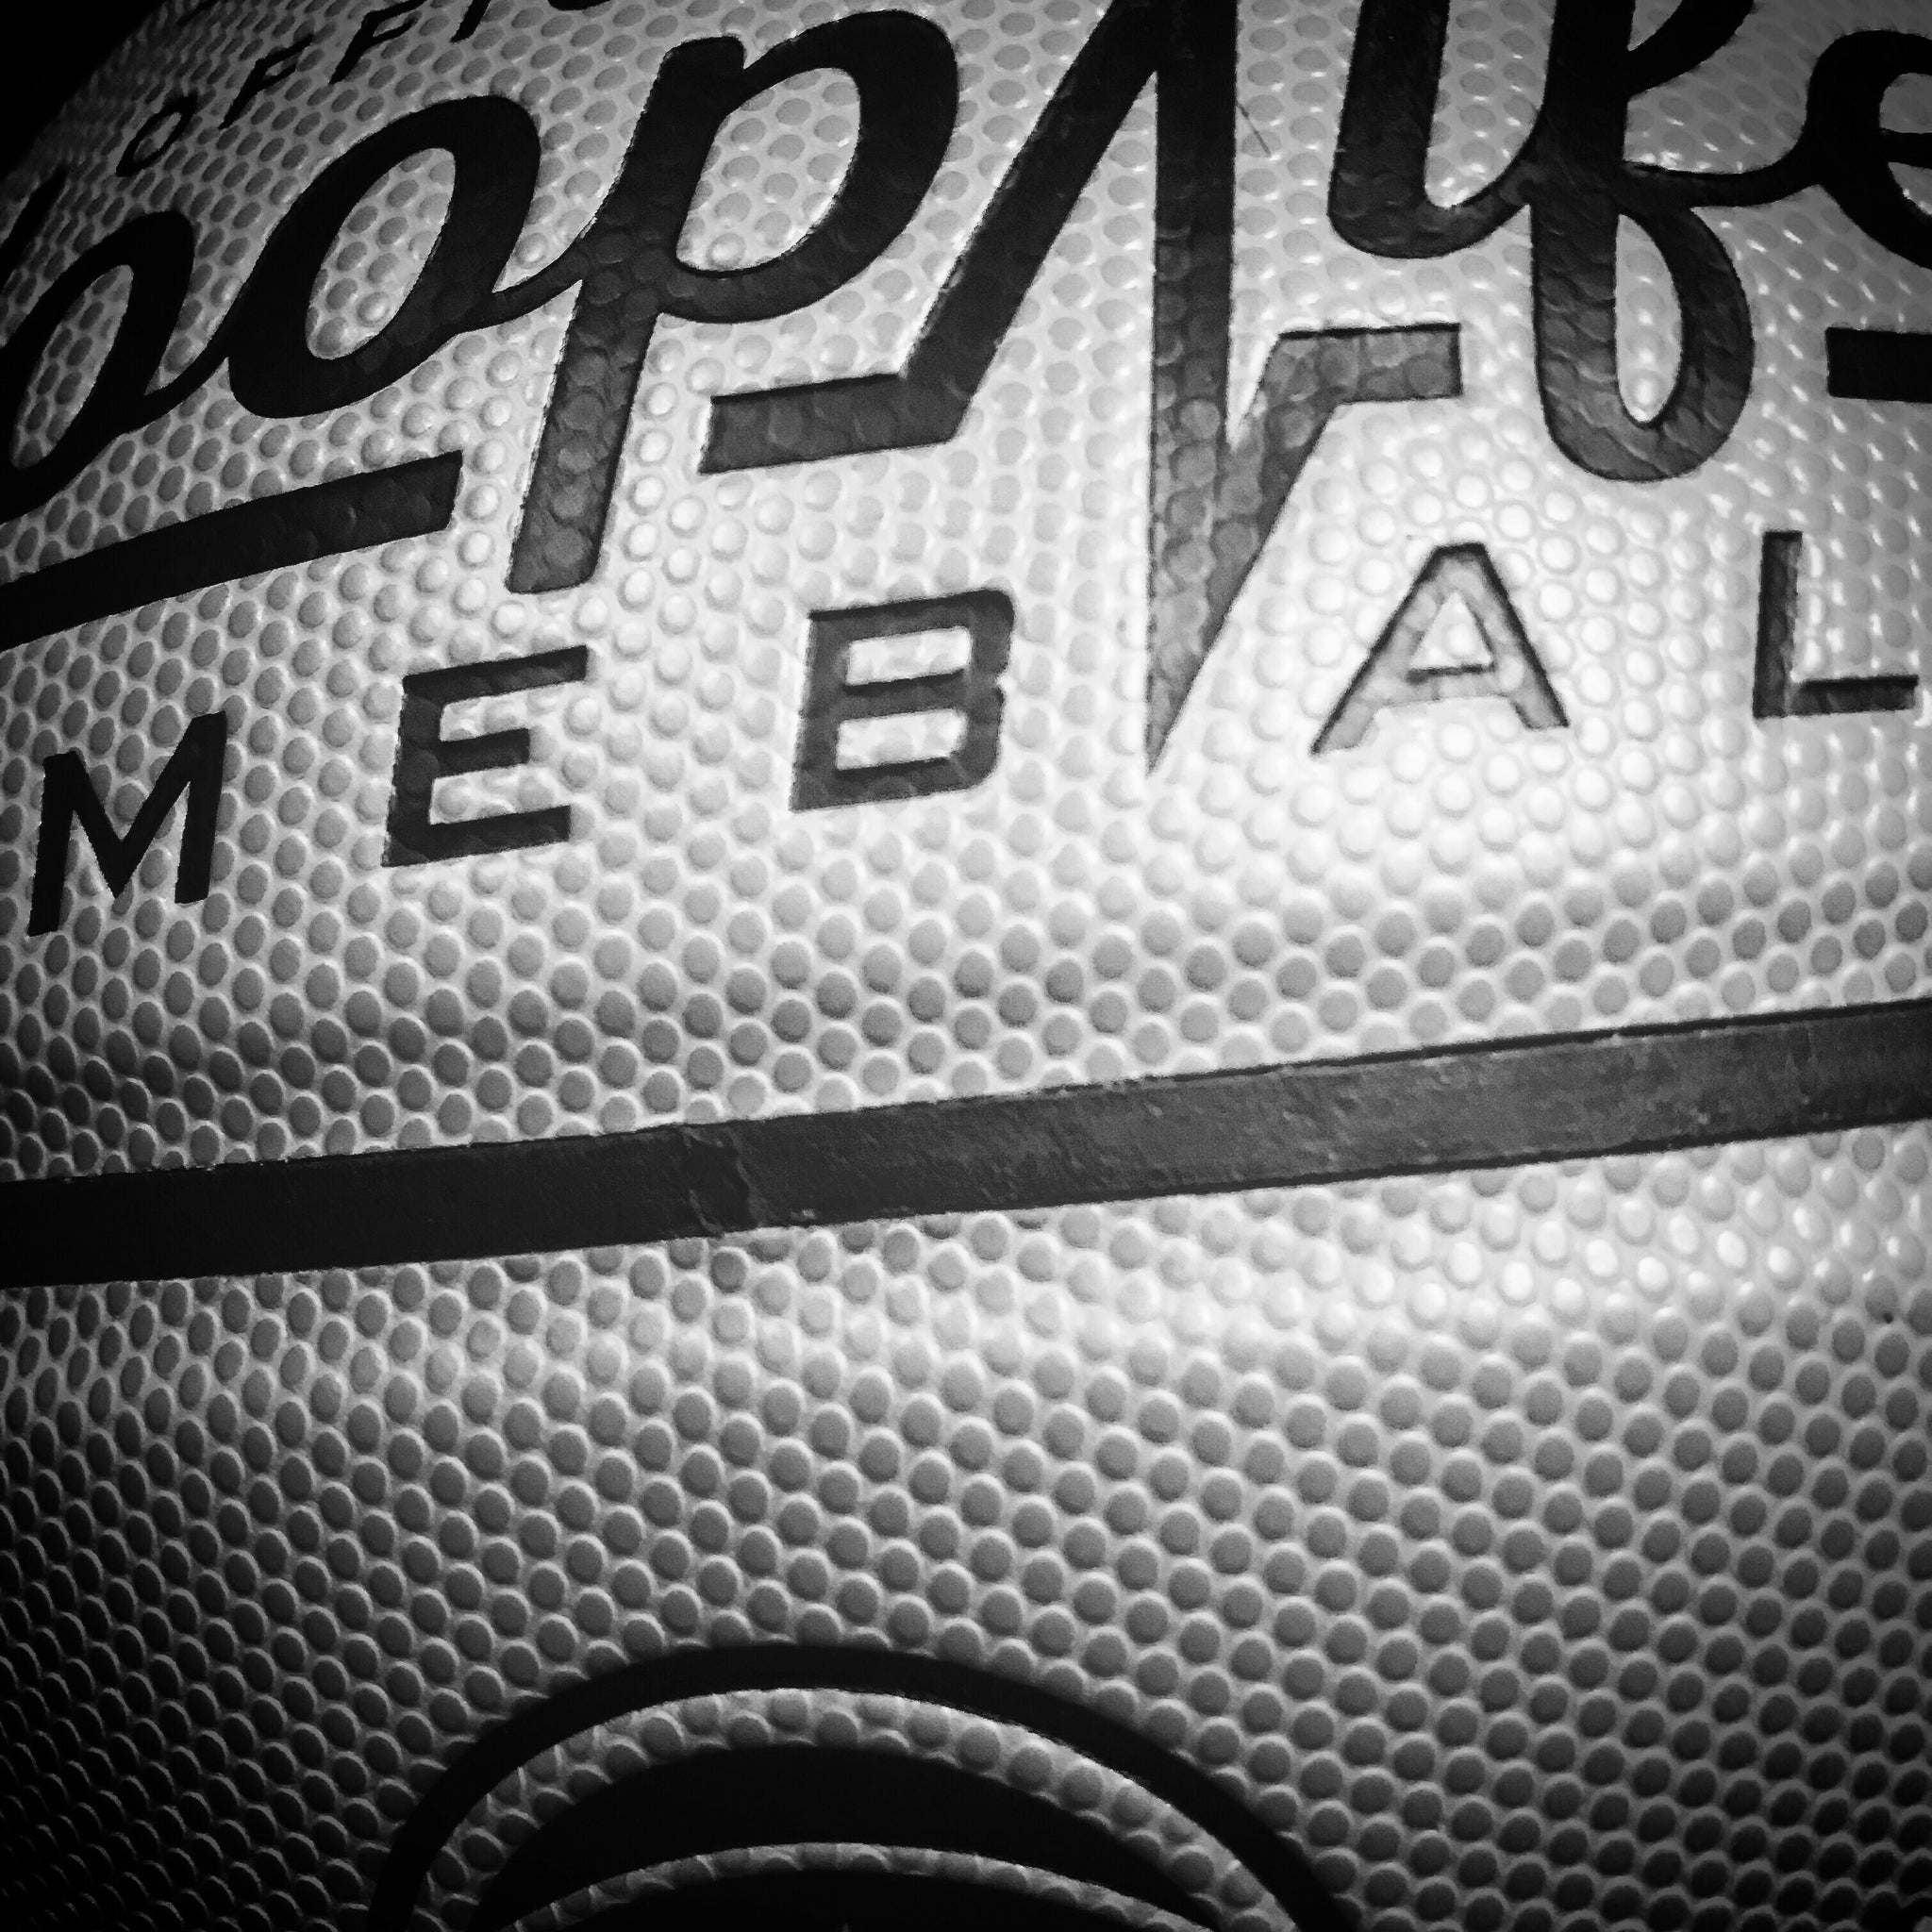 Hooplife